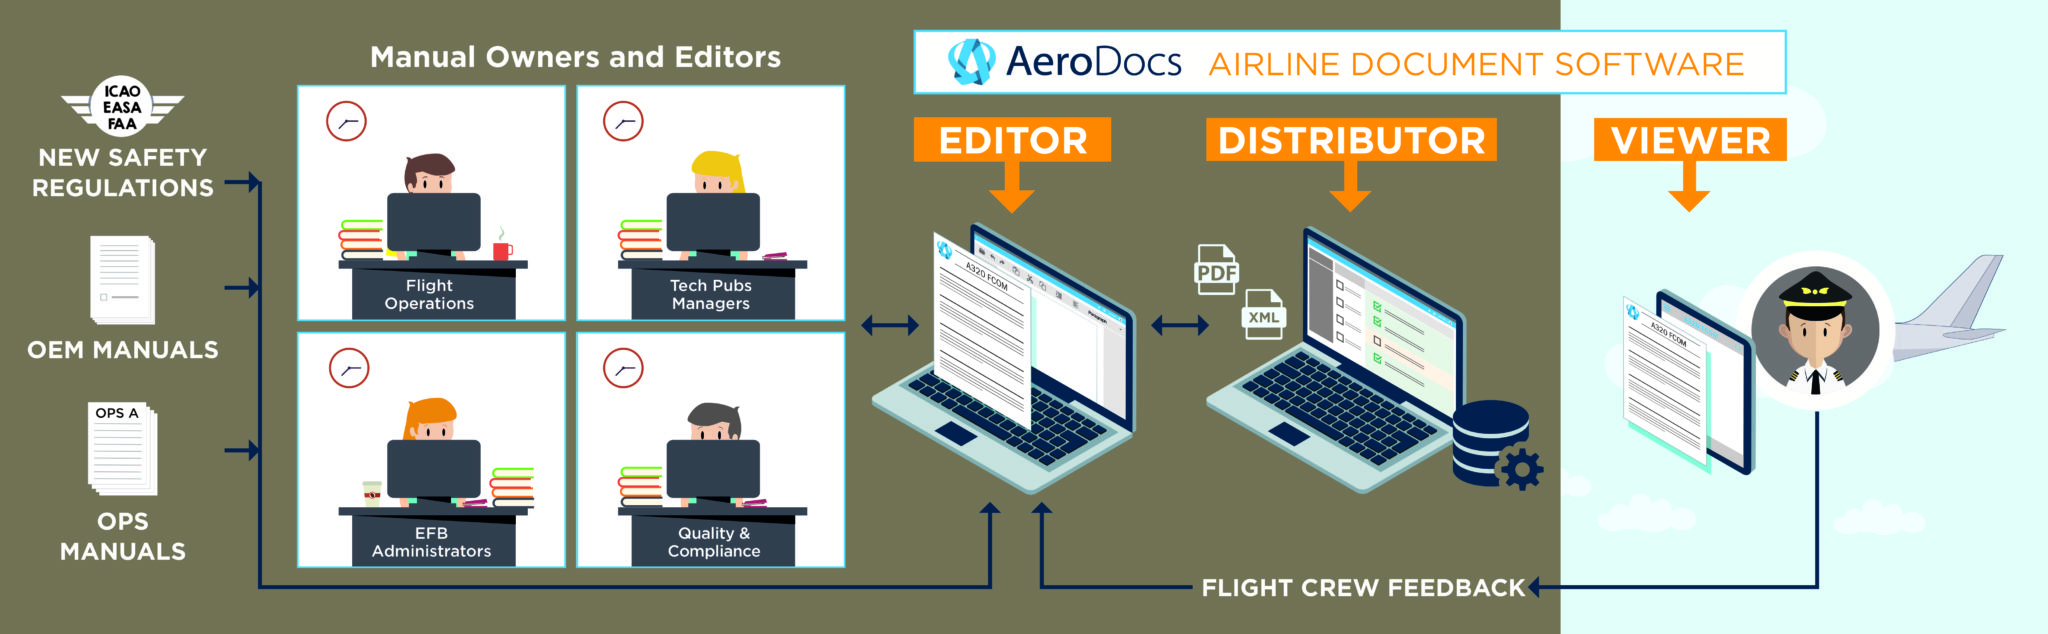 AeroDocs airline document software. Image: Arconics